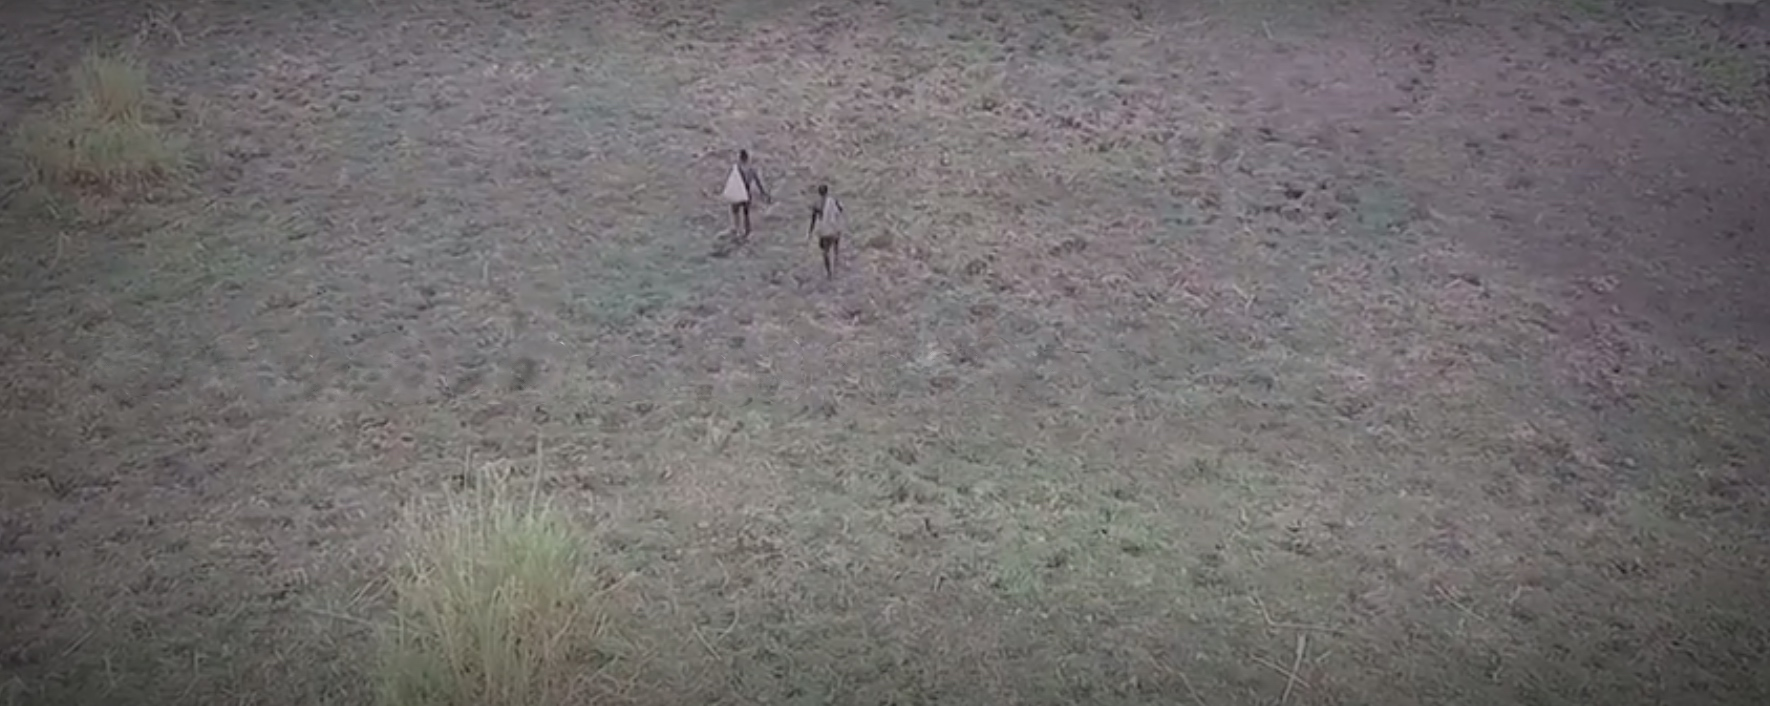 Drone footage shows poachers walking from in the skies.